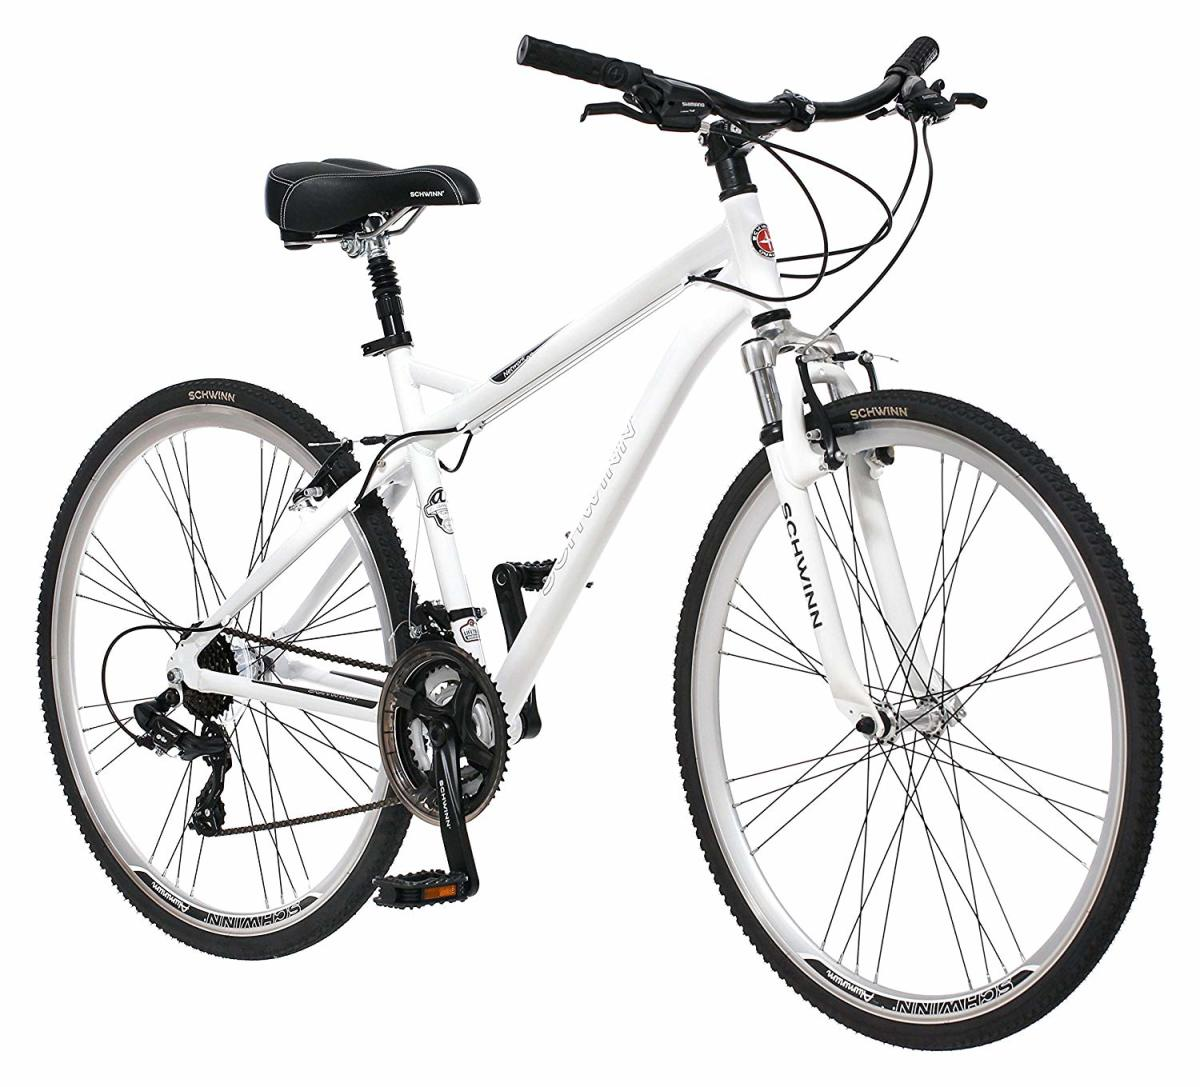 top-5-best-cheap-city-bikes-for-2013